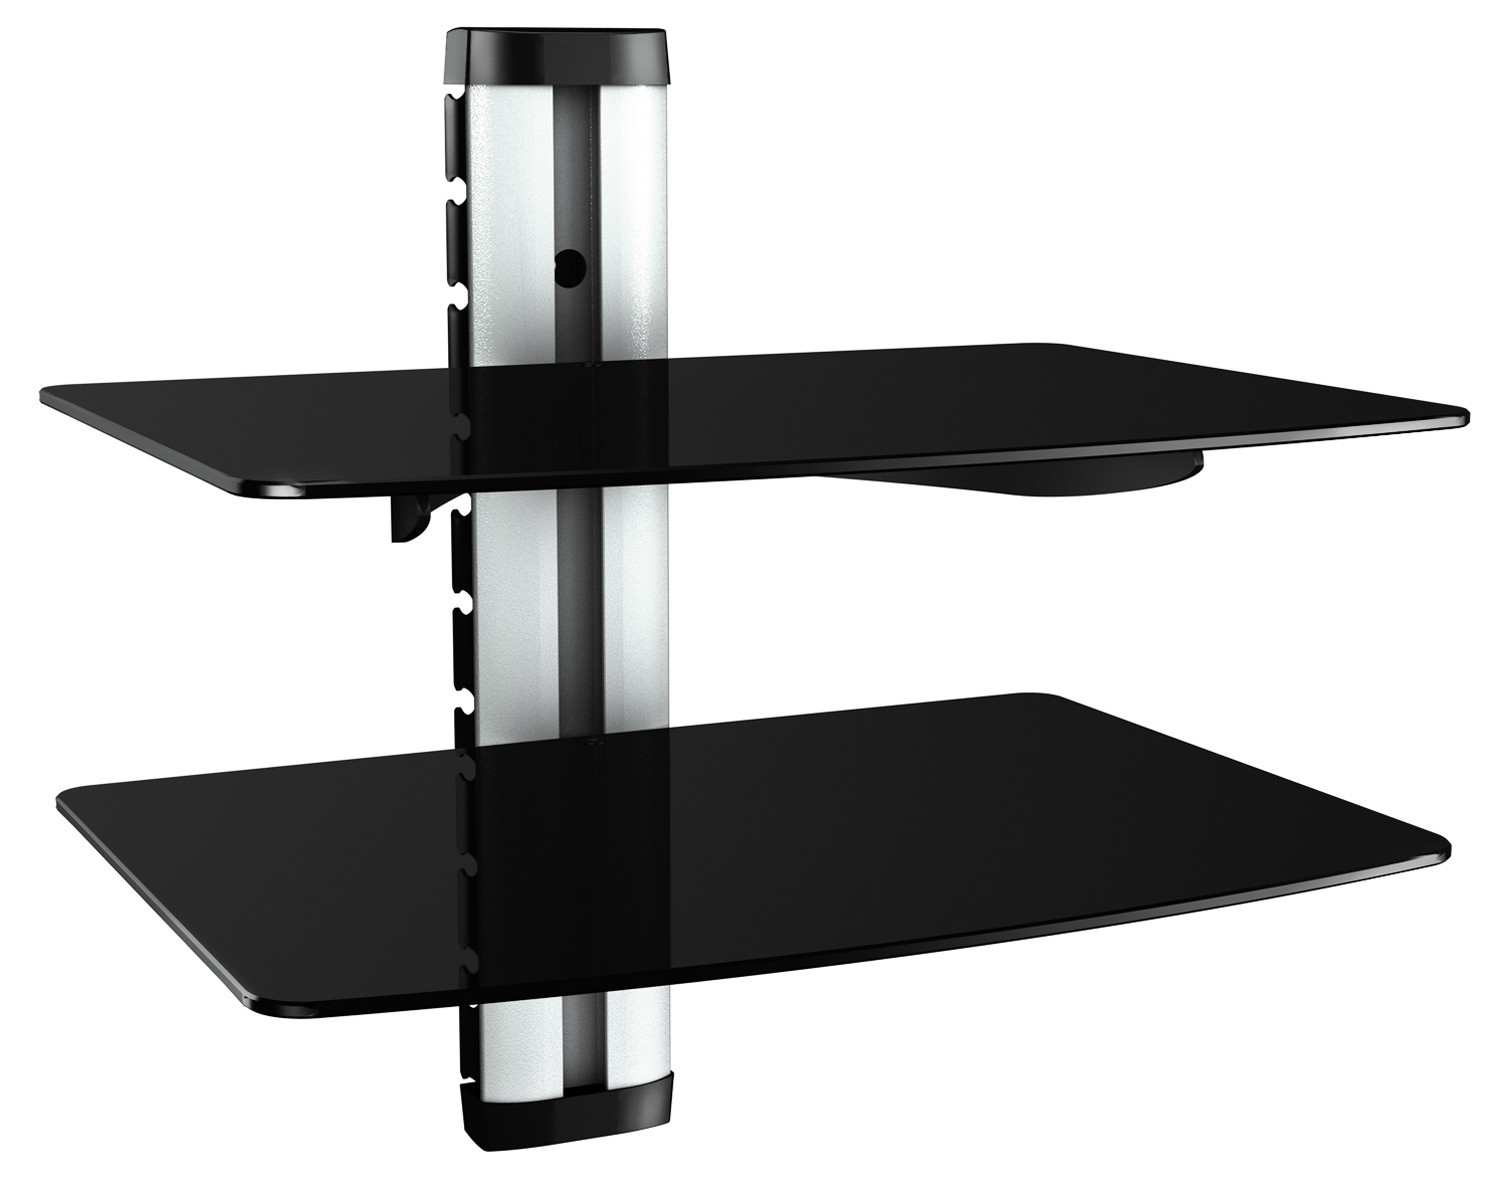 hifi regal dvd wandhalterung glas wandboard glasregal xl. Black Bedroom Furniture Sets. Home Design Ideas